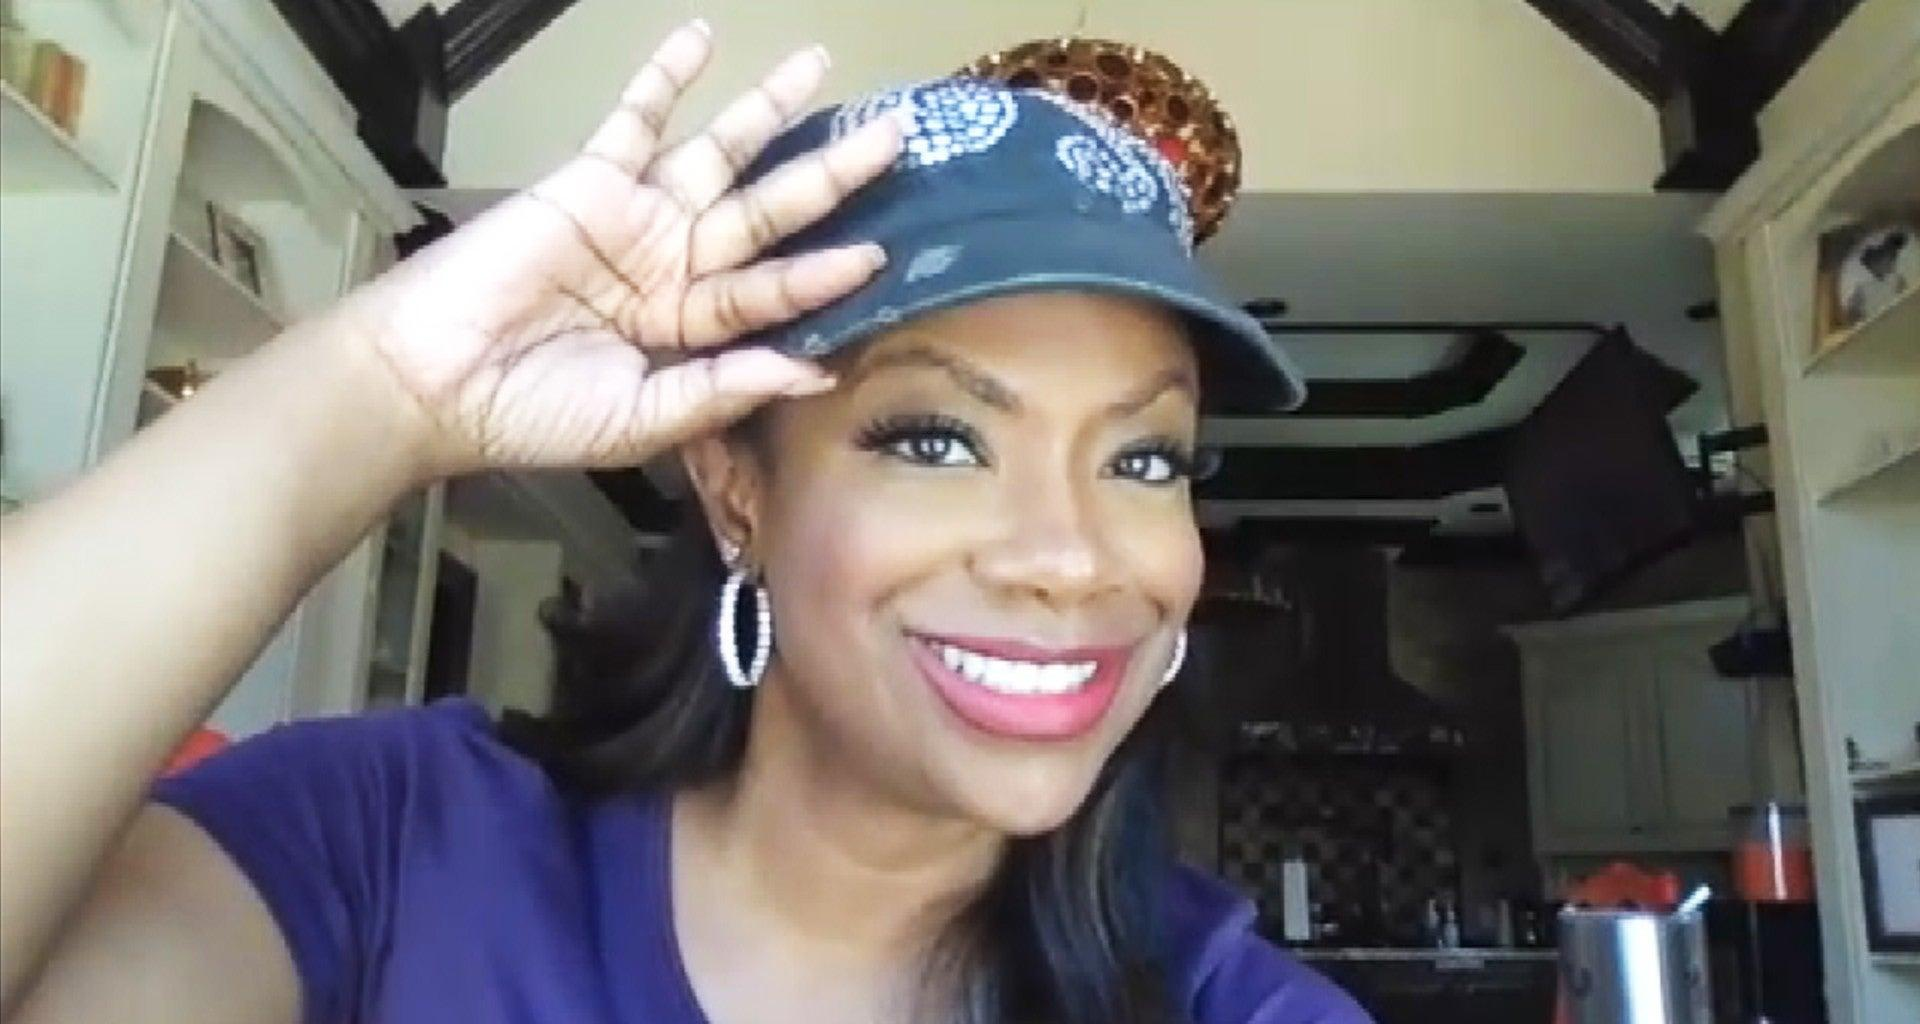 Kandi Burruss Makes Fans Smile With This Video